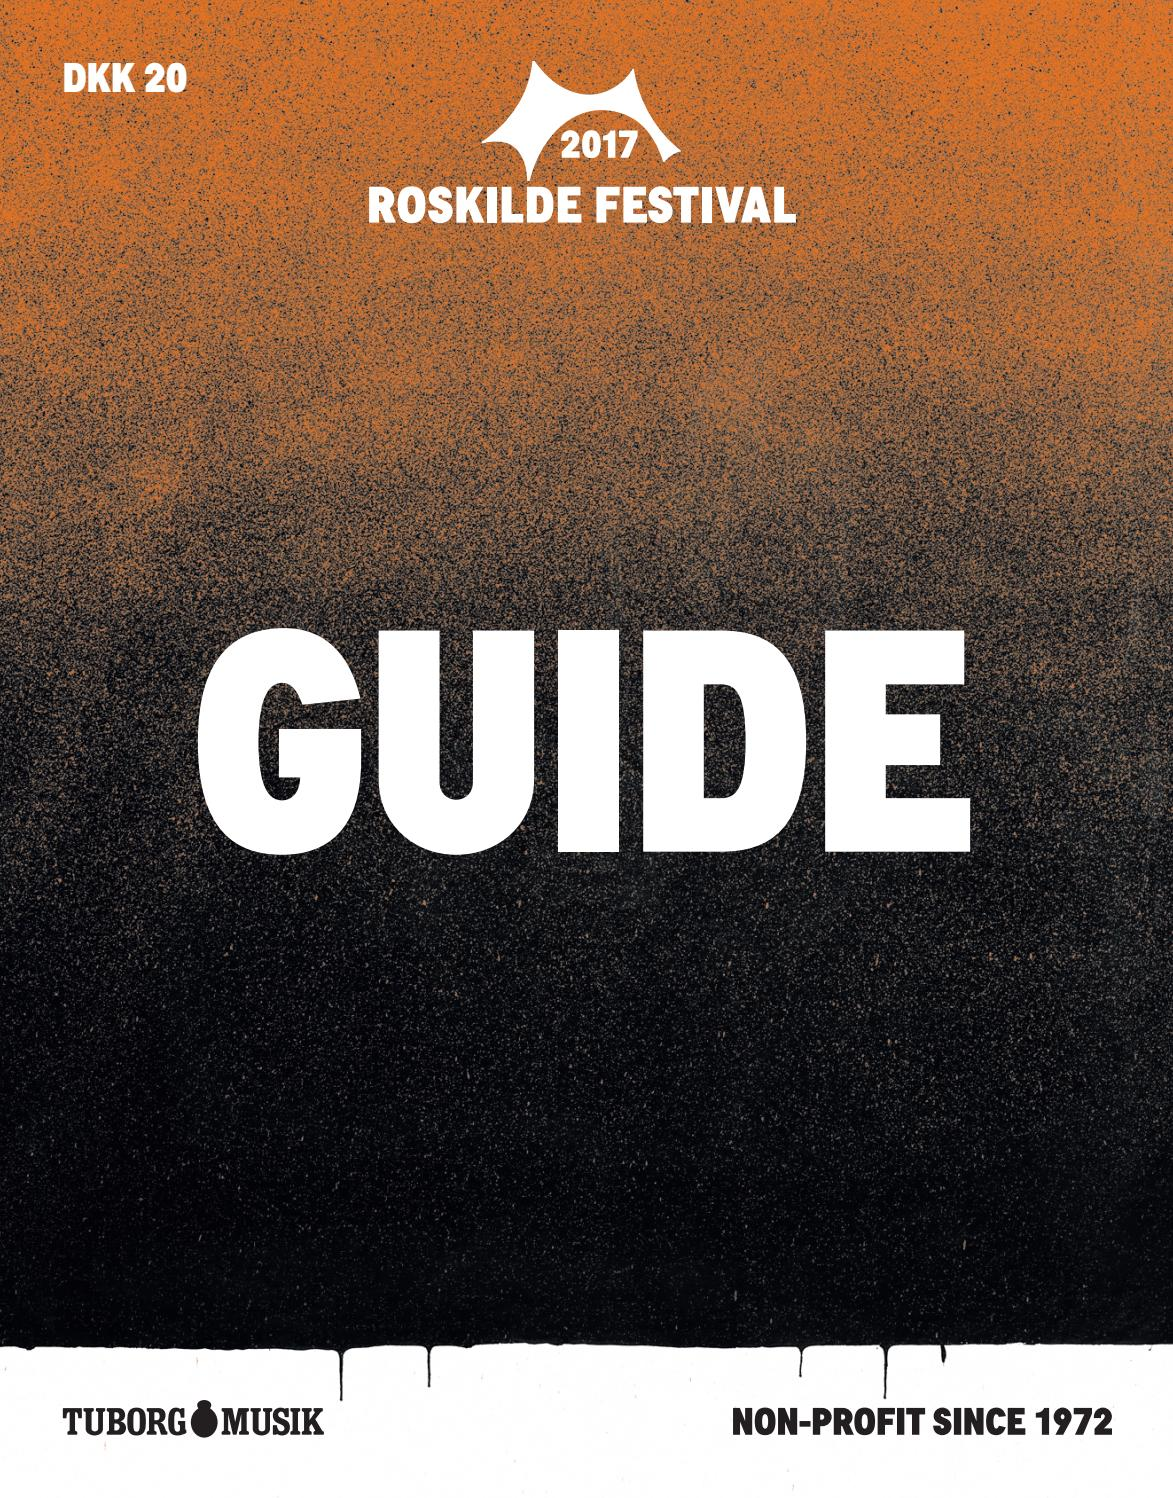 Roskilde Festival 2017 Guide By Issuu Circuit Construction Kit Acdc Virtual Lab From The Options Menu